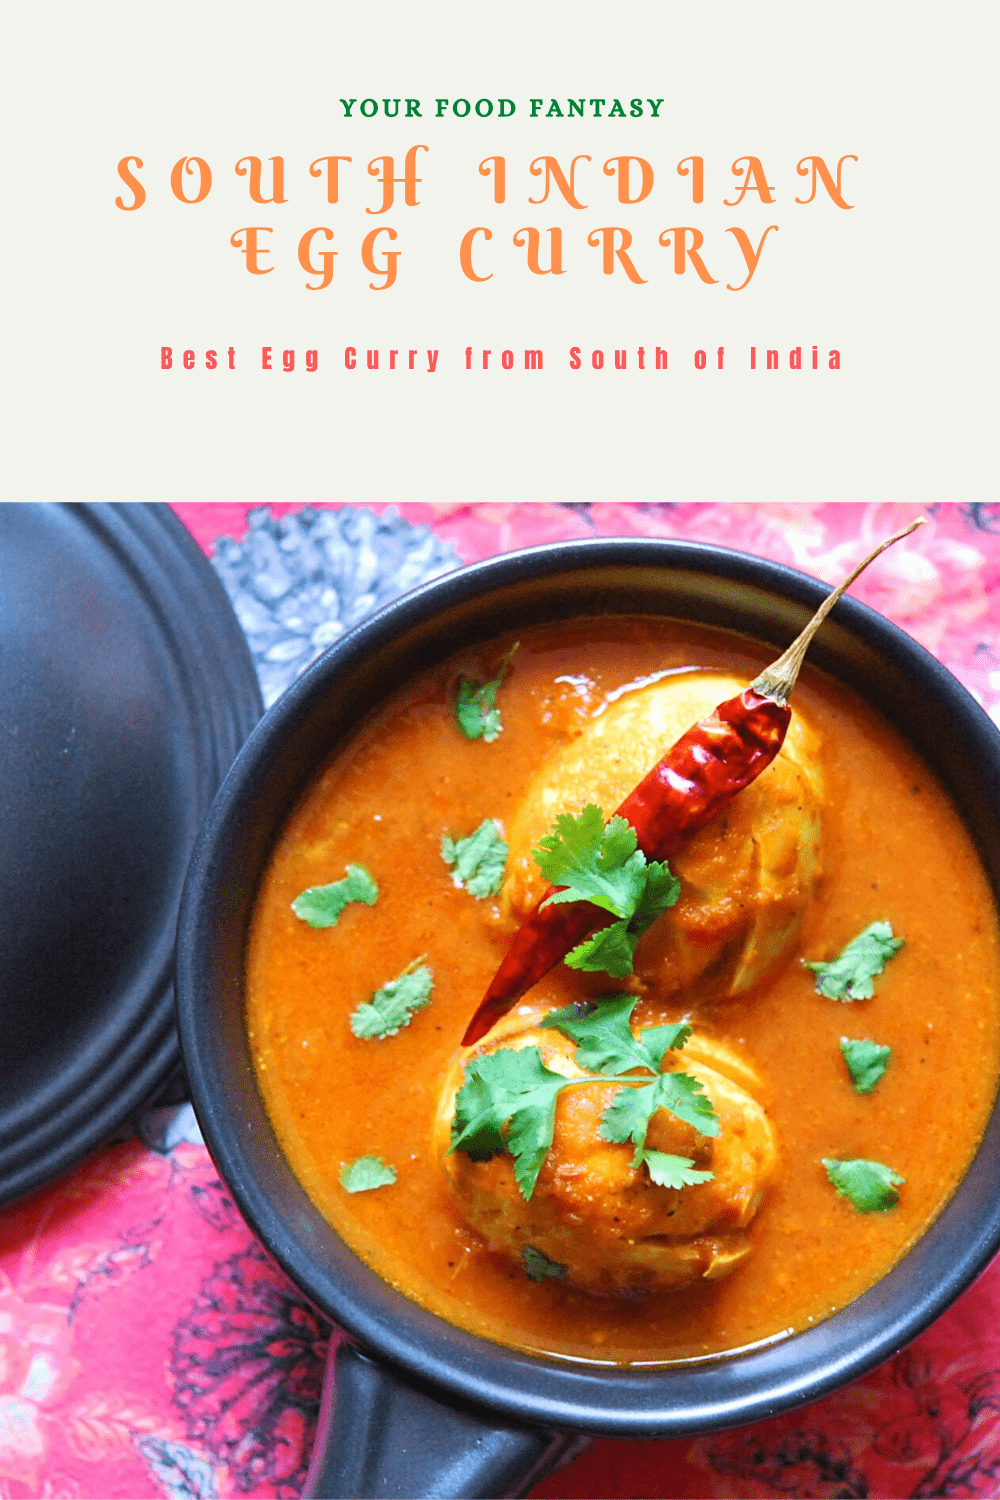 South Indian Egg Curry | Your Food Fantasy